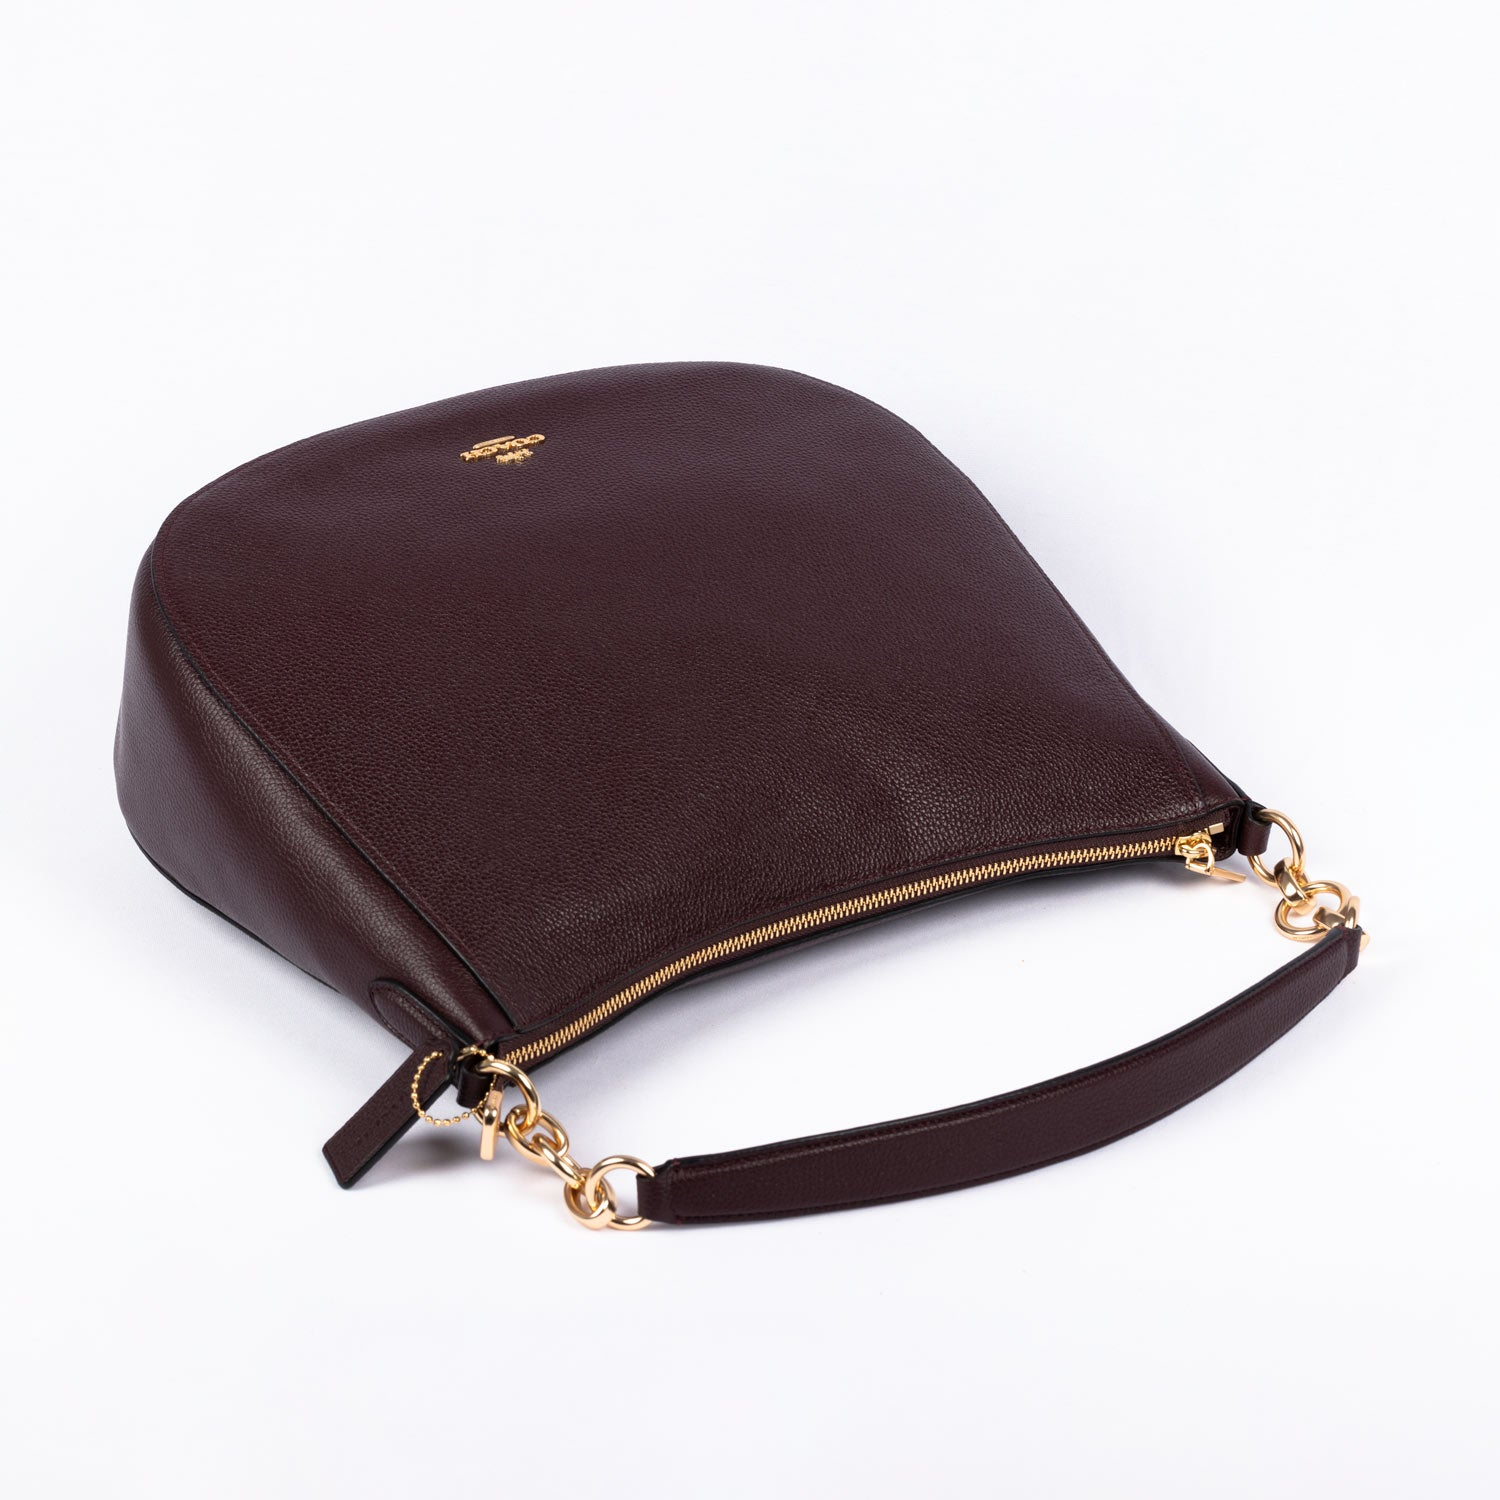 Chelsea 32 Hobo Bag | Shop COACH Online India